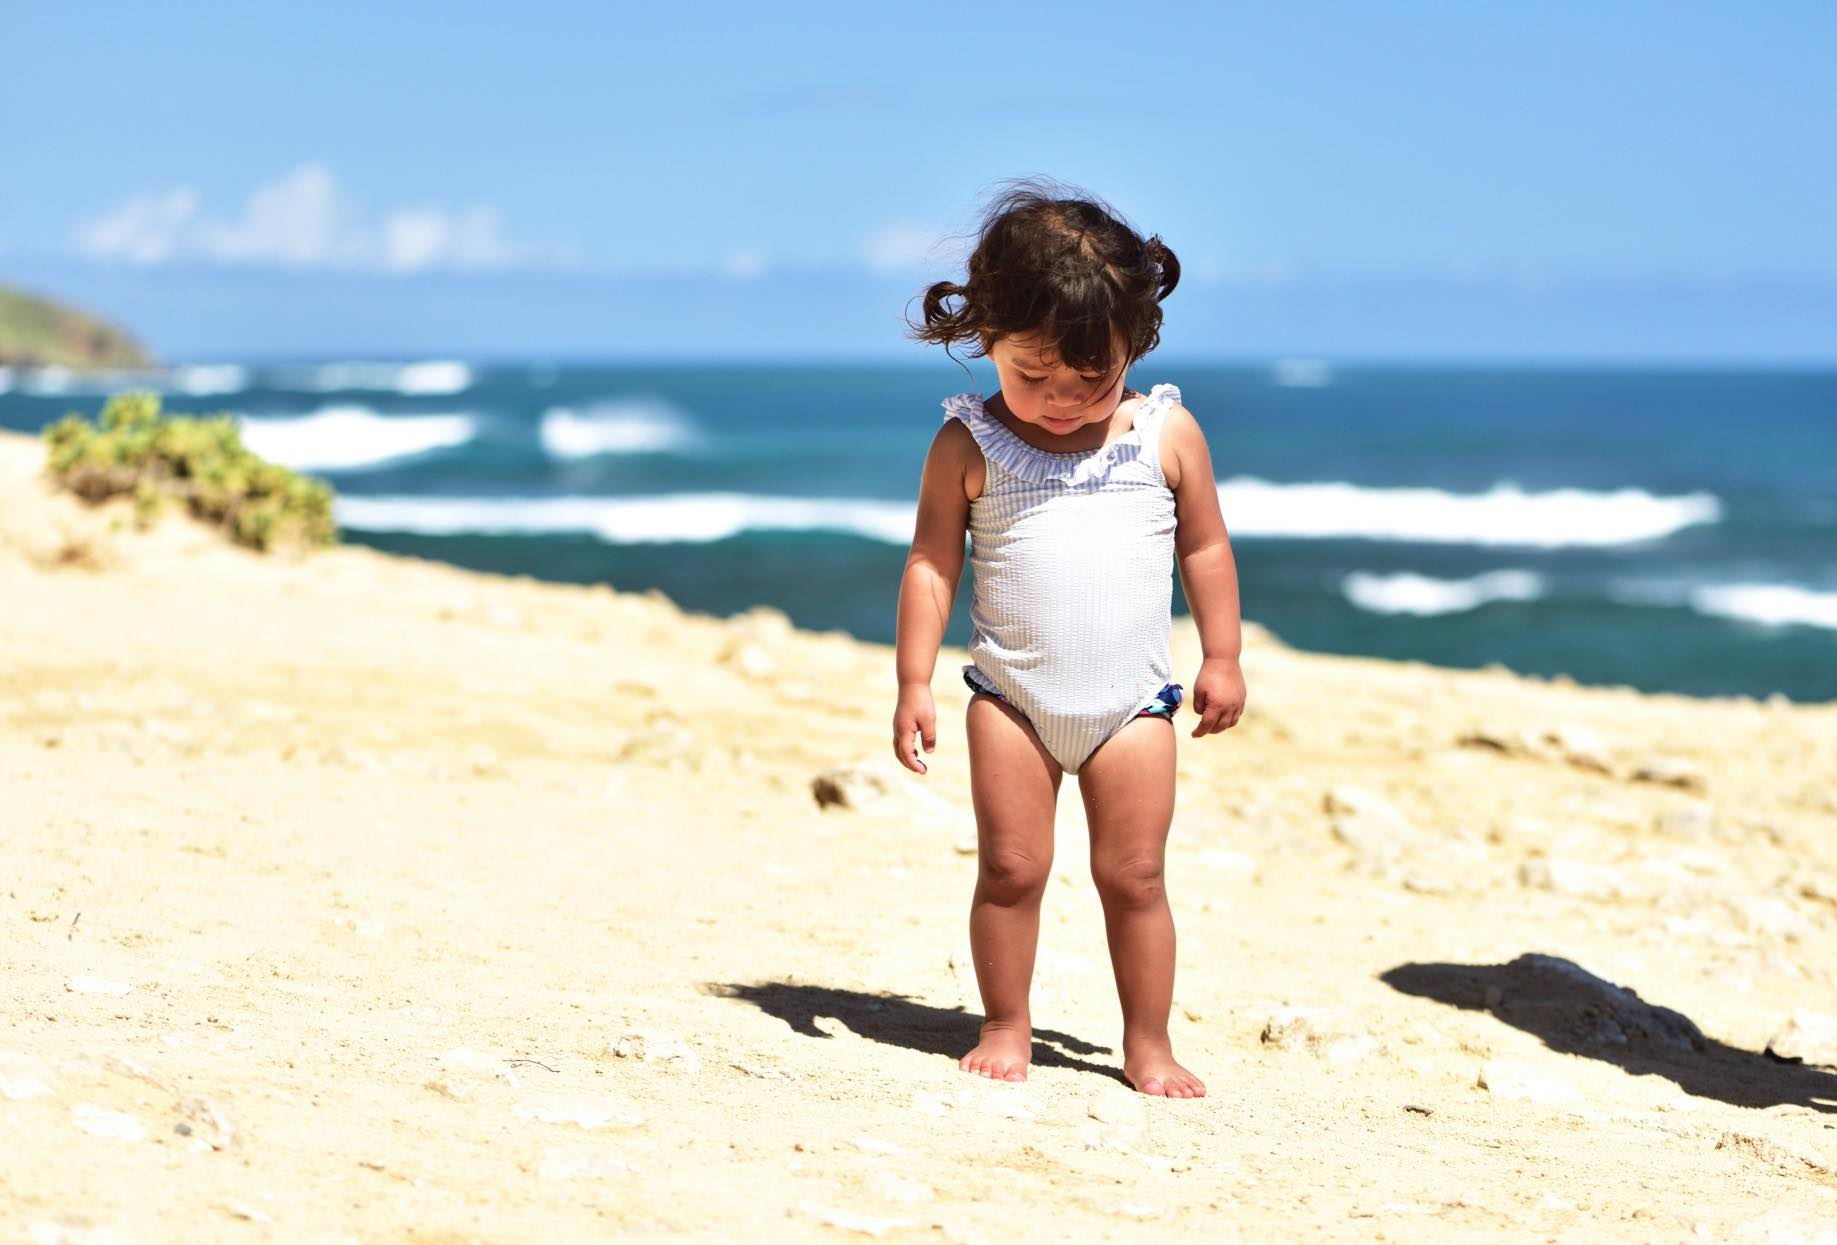 Find out the best things to do on Kauai with toddlers recommended by top Kauai blog Hawaii Travel with Kids. Image of a toddler on Kauai.